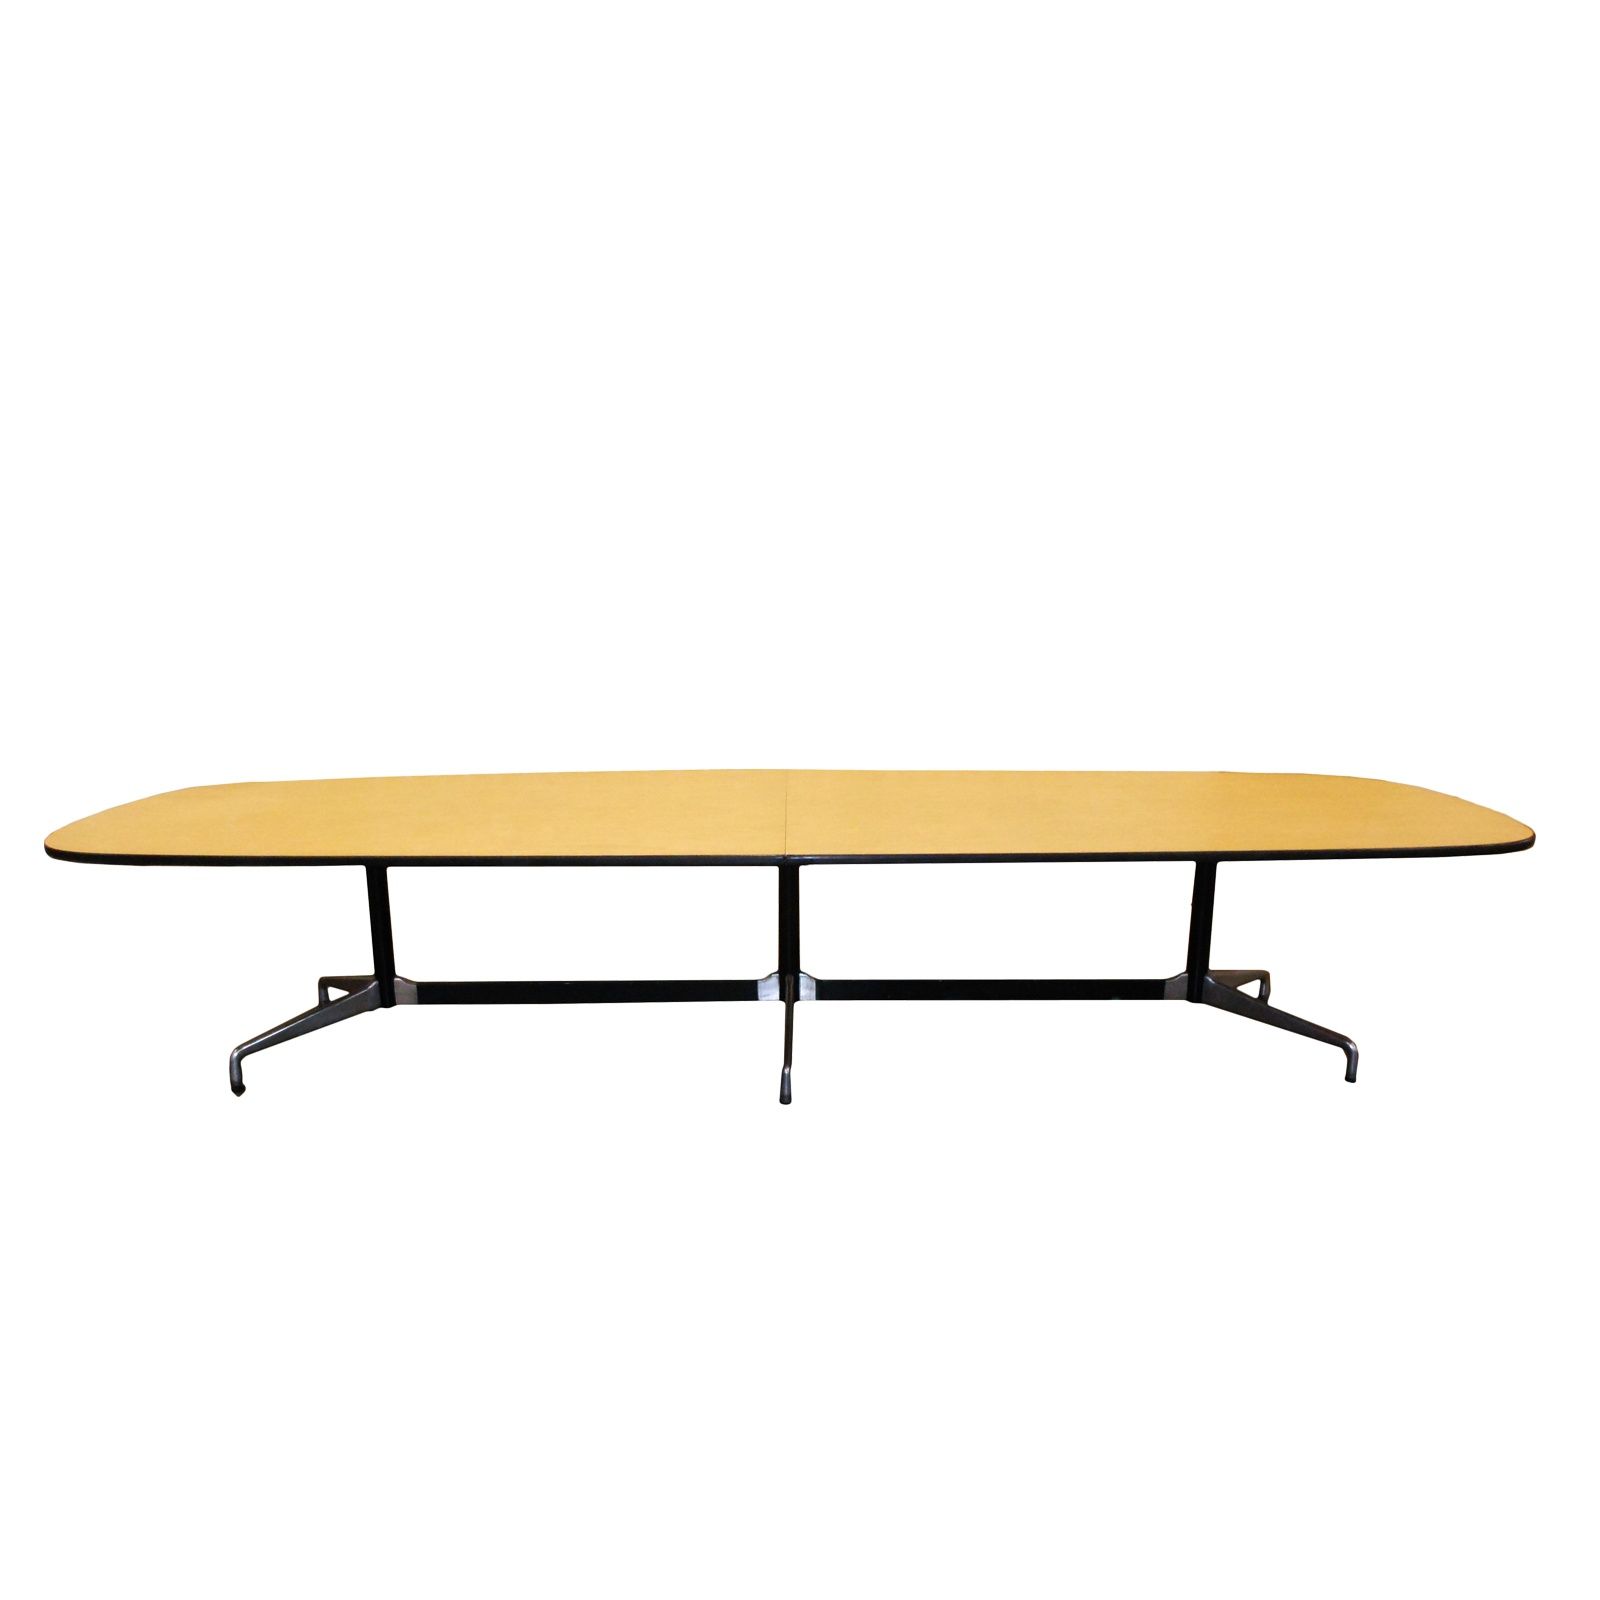 Eames Conference Table Rental Furniture Rental FormDecor - Eames oval conference table